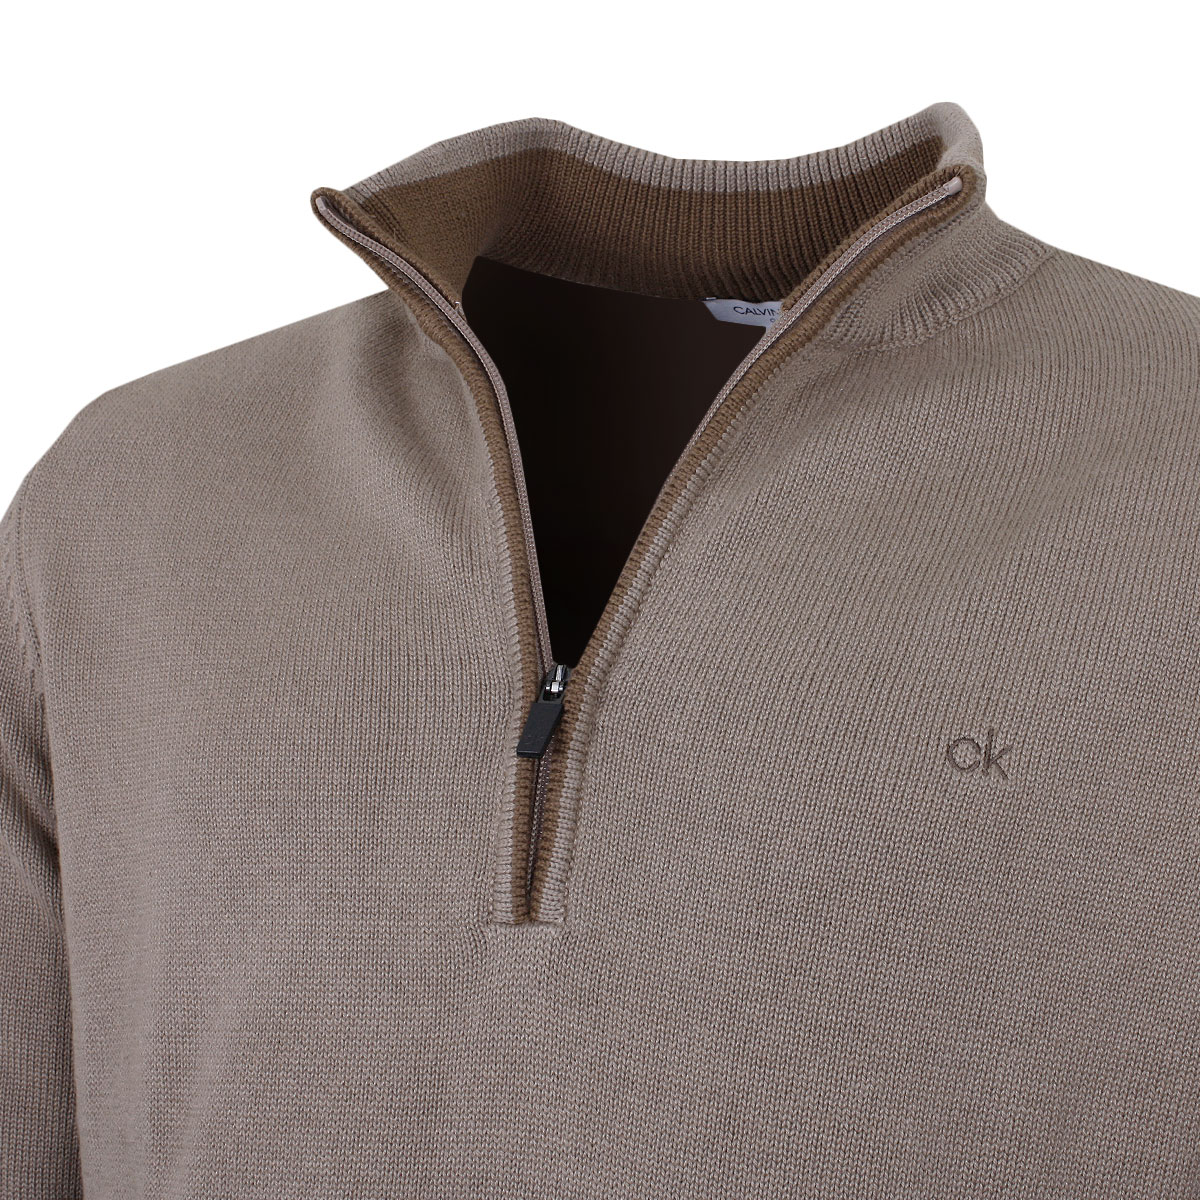 Calvin-Klein-Golf-Mens-2019-Chunky-Cotton-1-2-Zip-Golf-Top-Sweater-37-OFF-RRP thumbnail 41